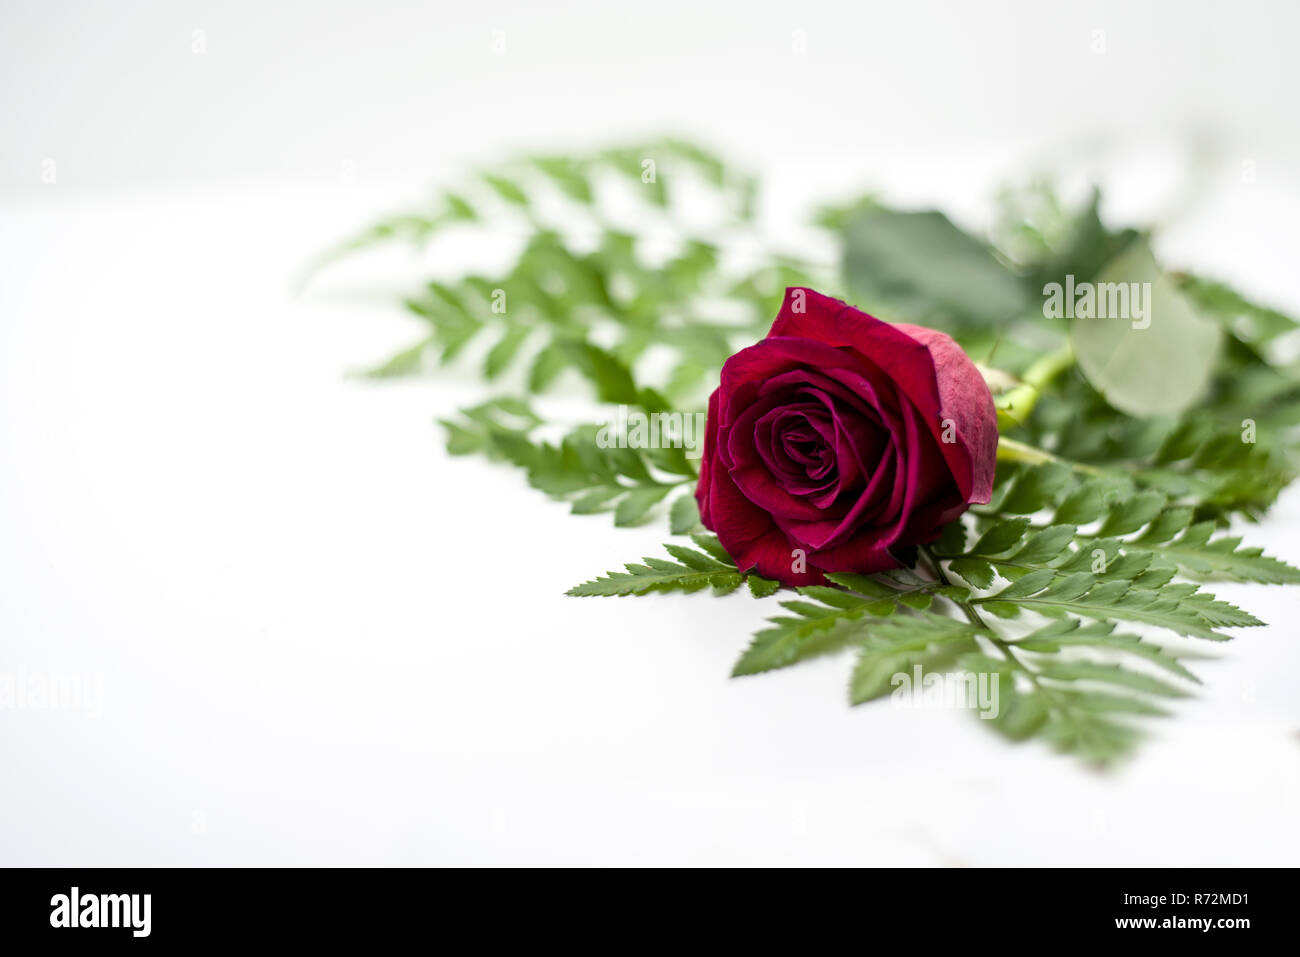 red rose decrepit on green on white background - Stock Image